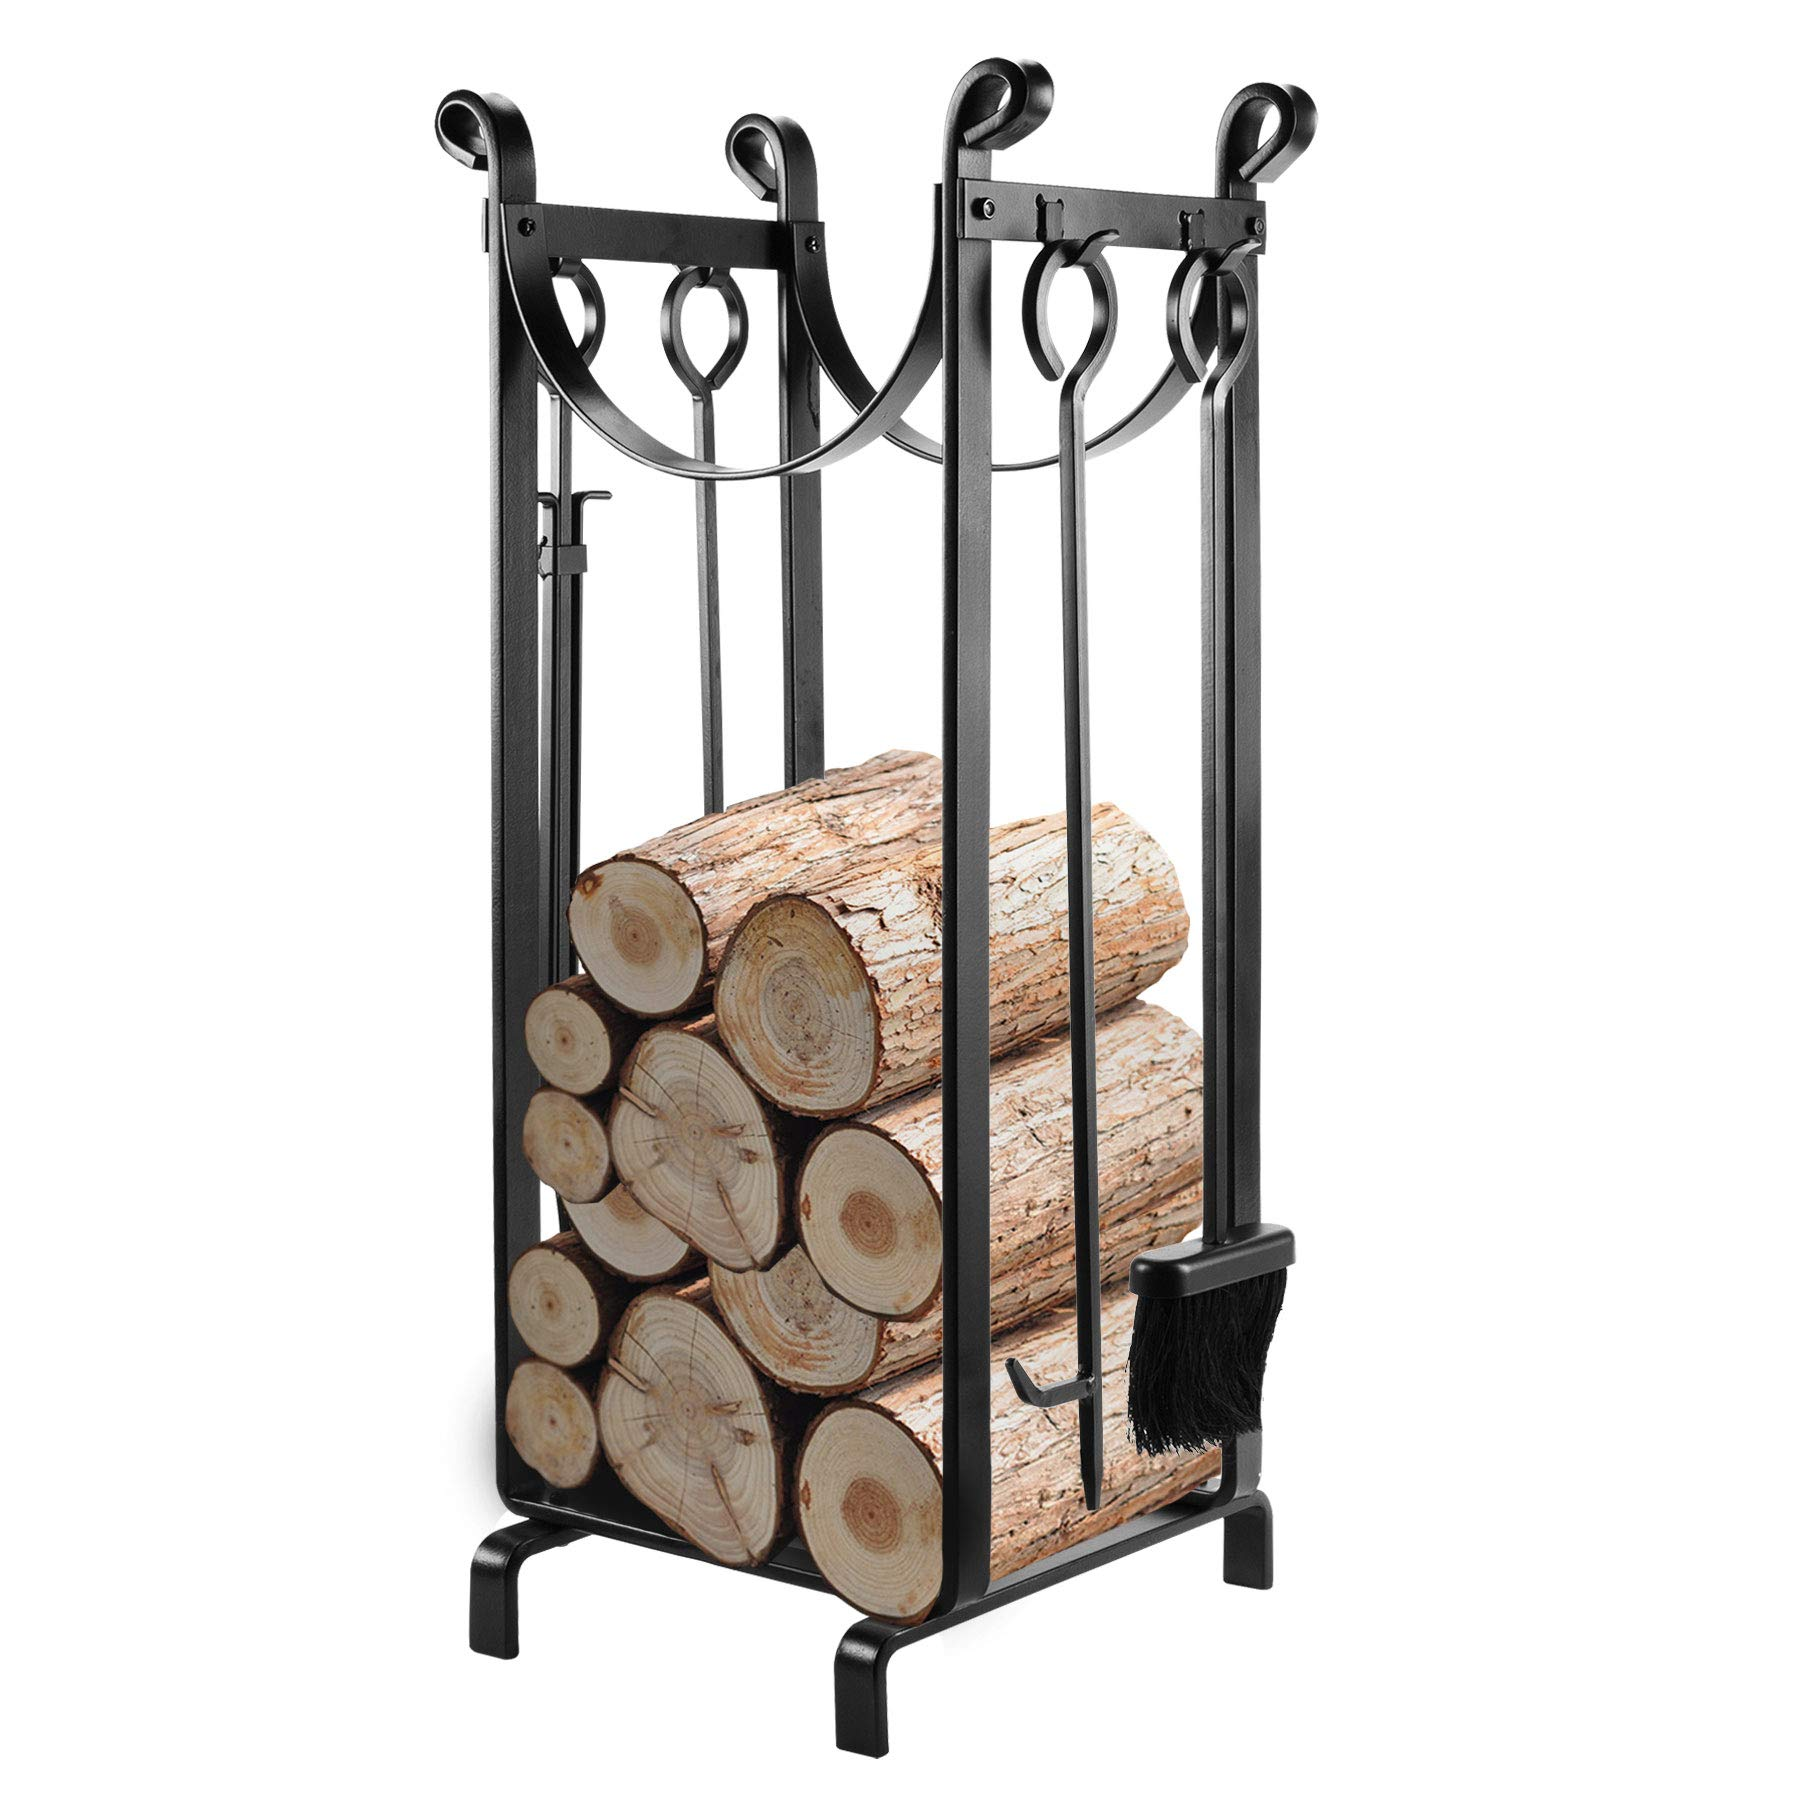 Pinty Sling Log Rack with Fireplace Tools, Hammered Steel, Including Rack, Brush, Shovel, Tong and Fireplace Hook by Pinty